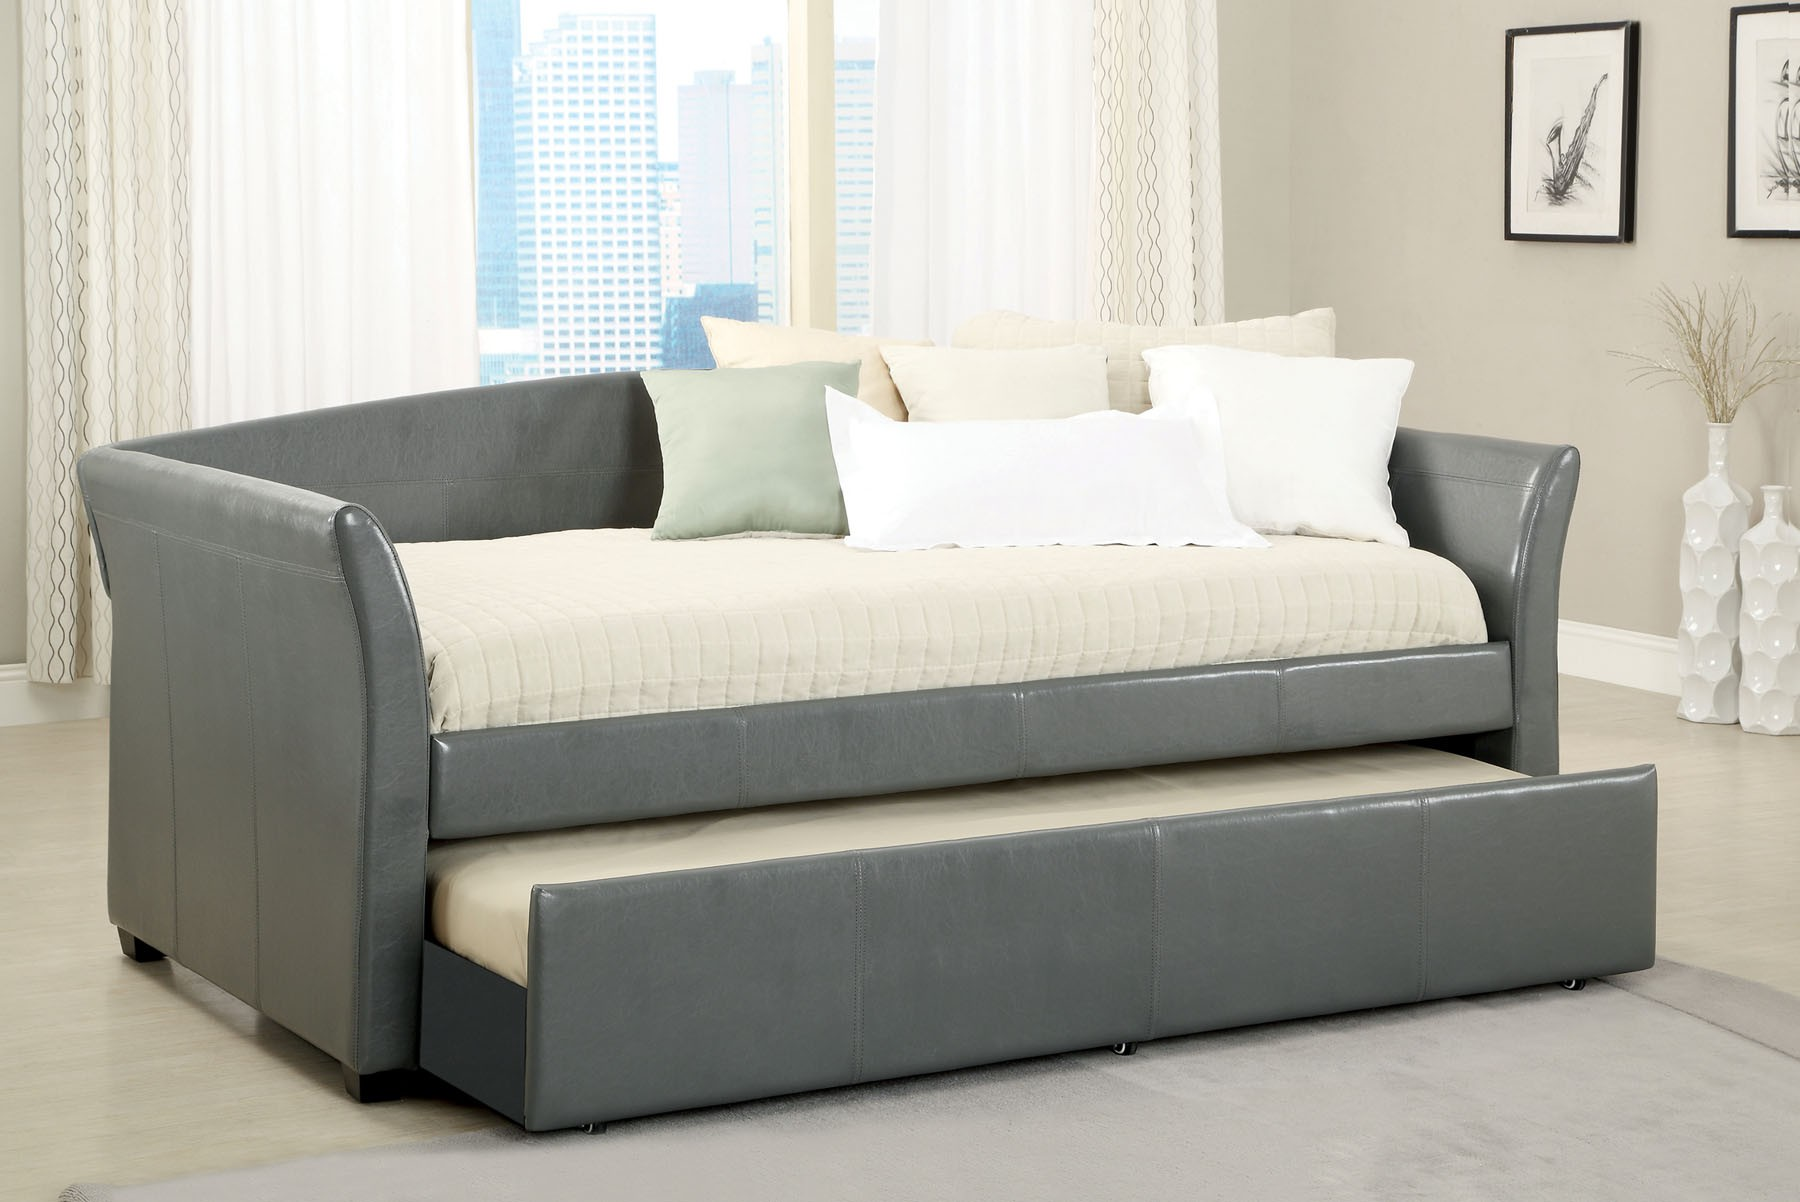 Gray Contemporary Daybed with Trundle